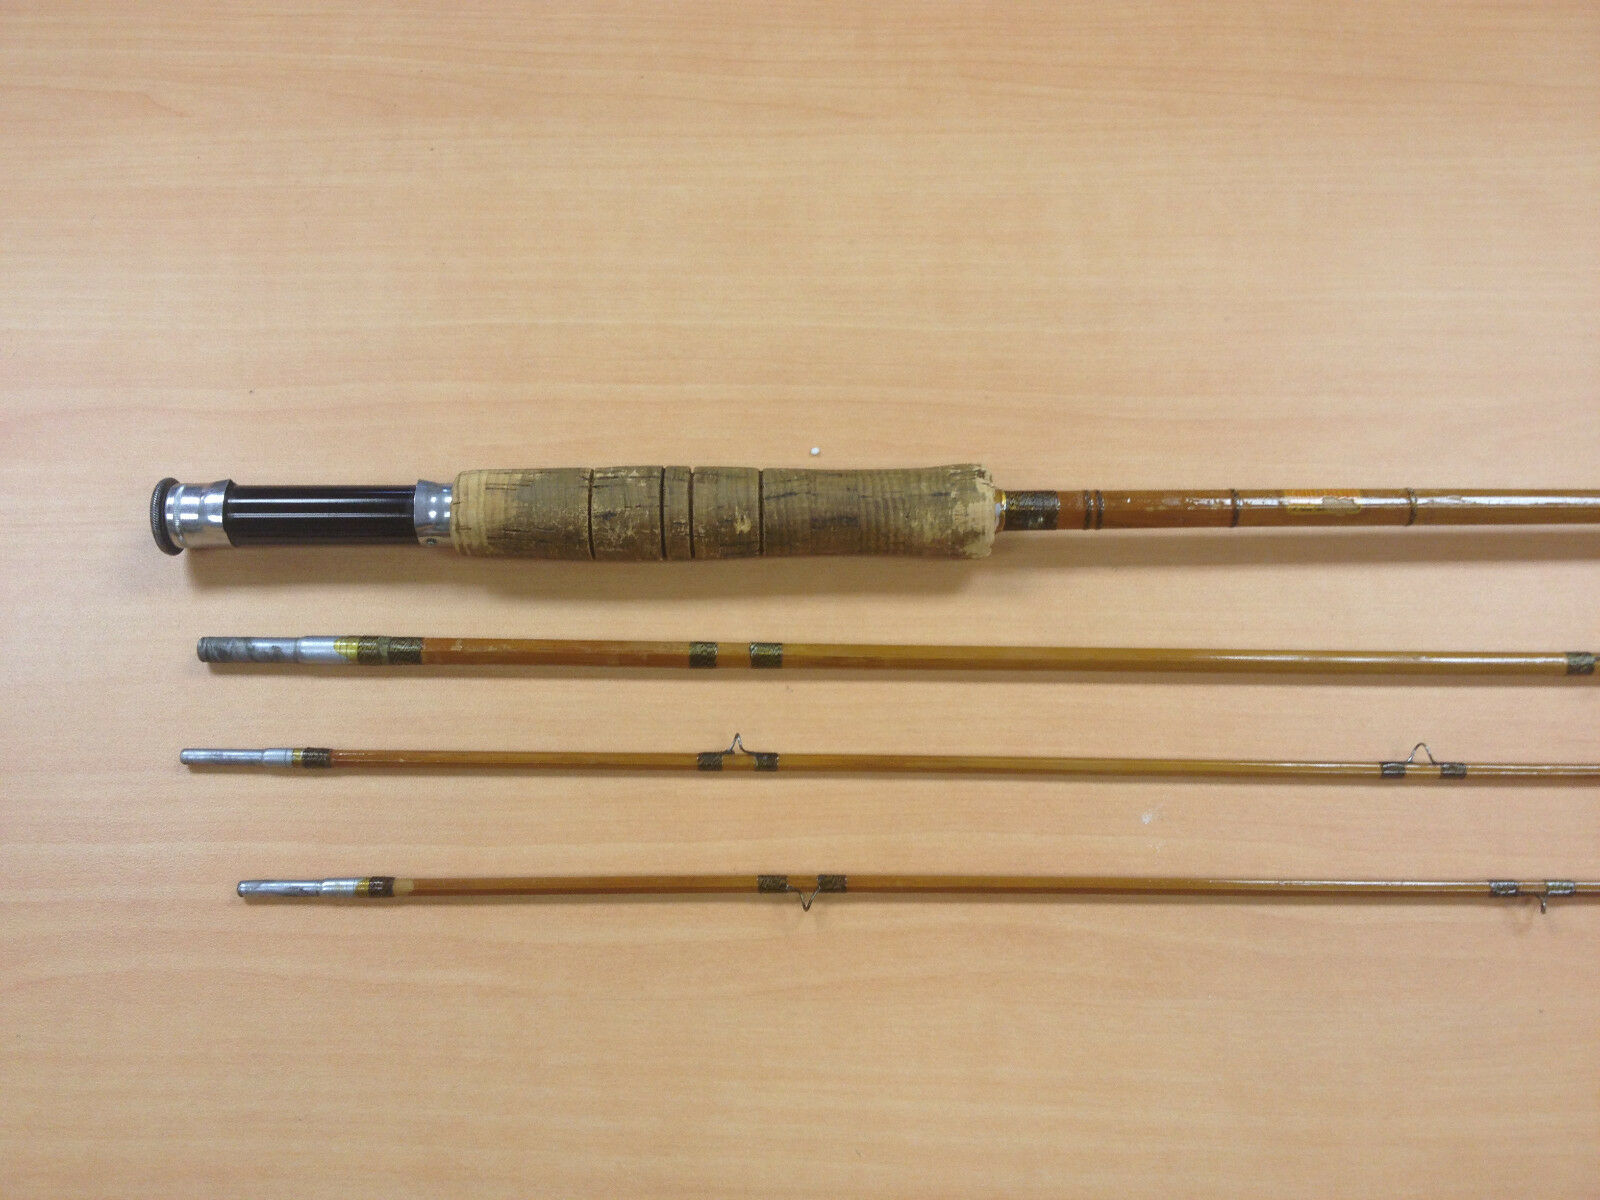 SOUTH BEND Bamboo Fly Fishing Rod Model 323 - 9' Cloth Case & Tube